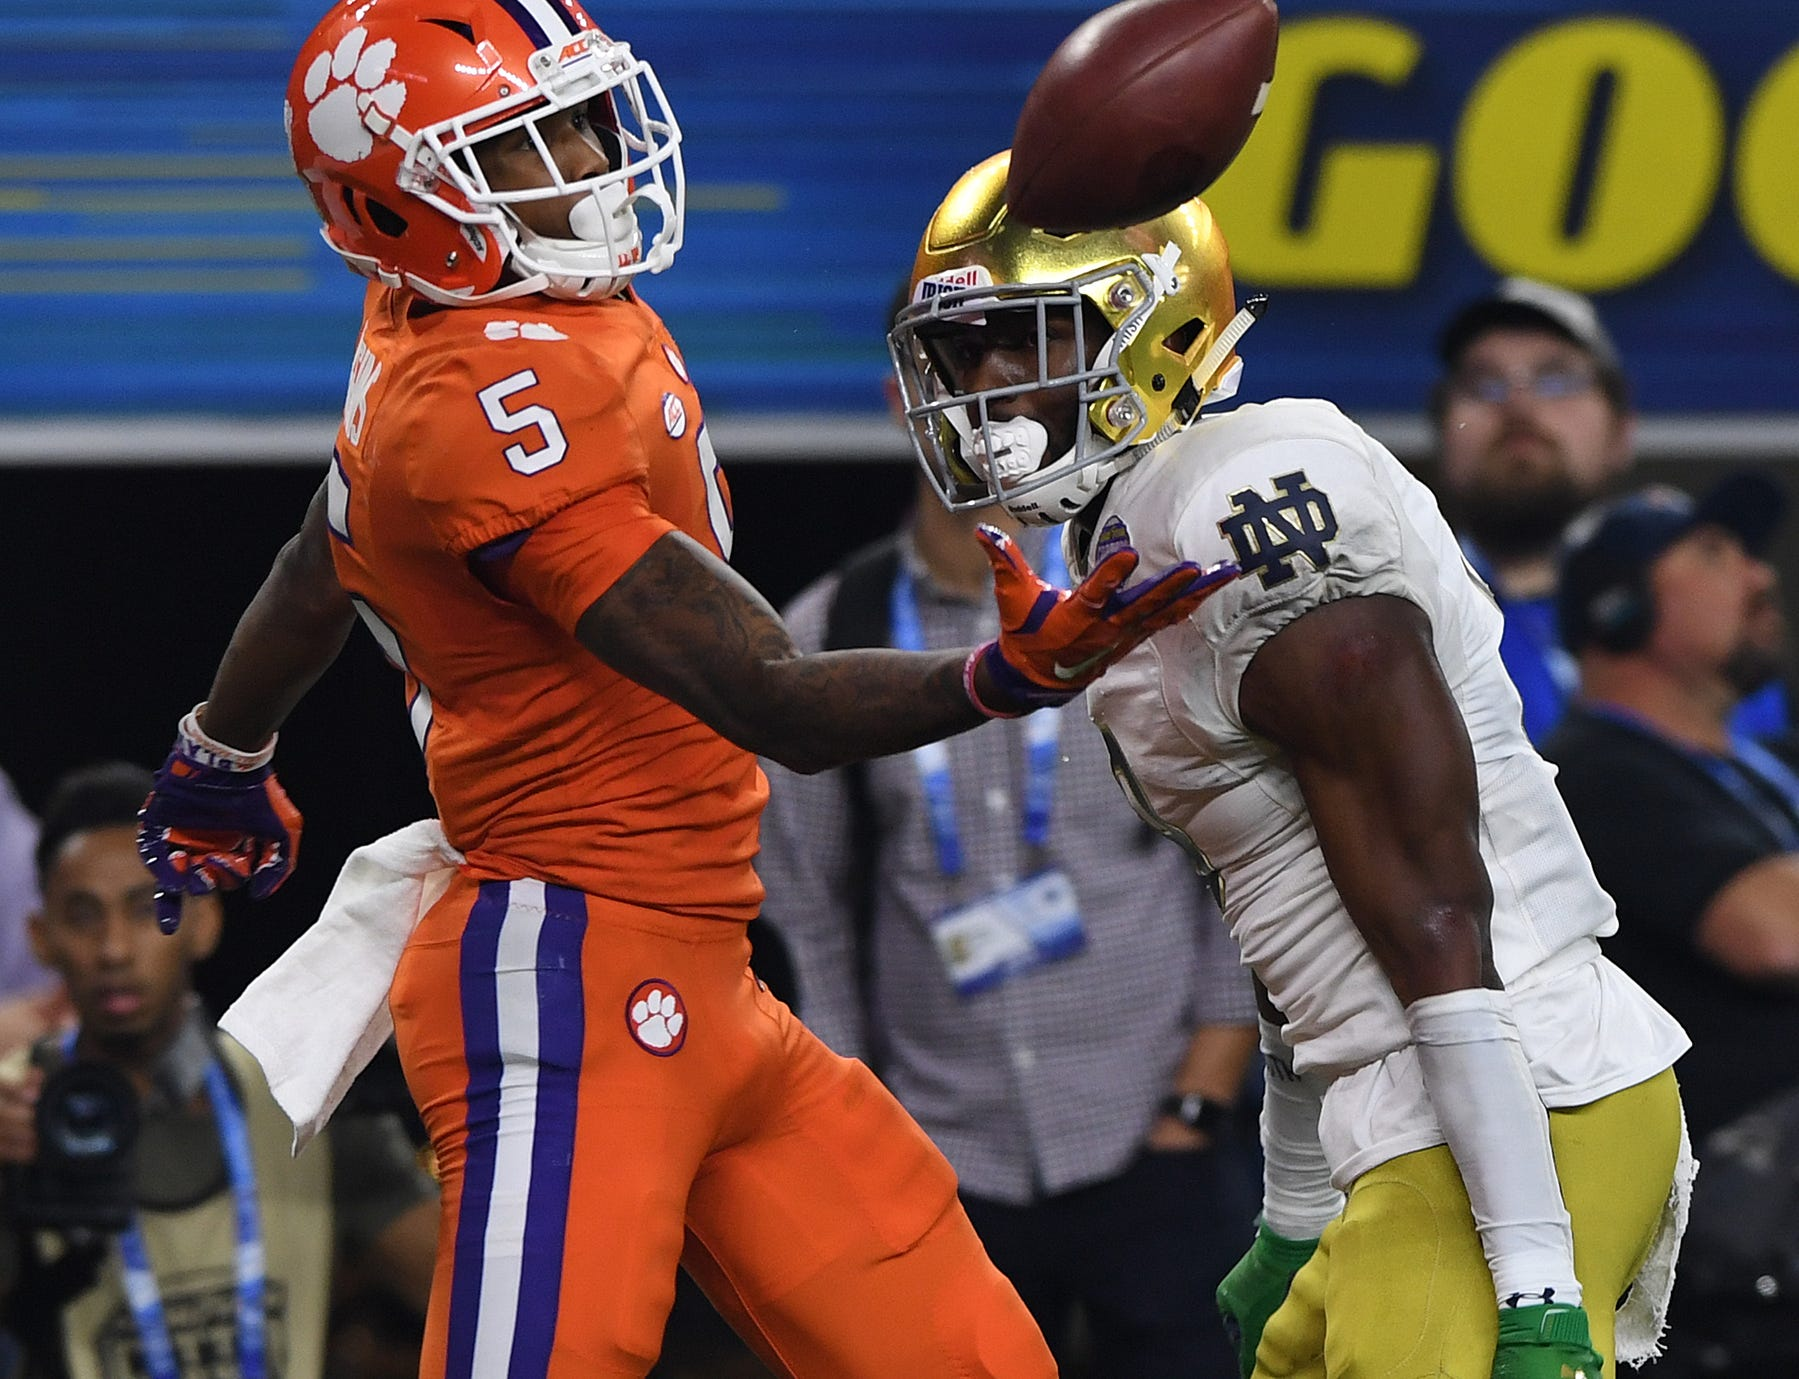 Clemson wide receiver Tee Higgins (5) pulls in a 19 yard TD past Notre Dame cornerback Donte Vaughn (8) with 2 seconds left to play in the 2nd quarter of the Goodyear Cotton Bowl at AT&T stadium in Arlington, Texas on Saturday.